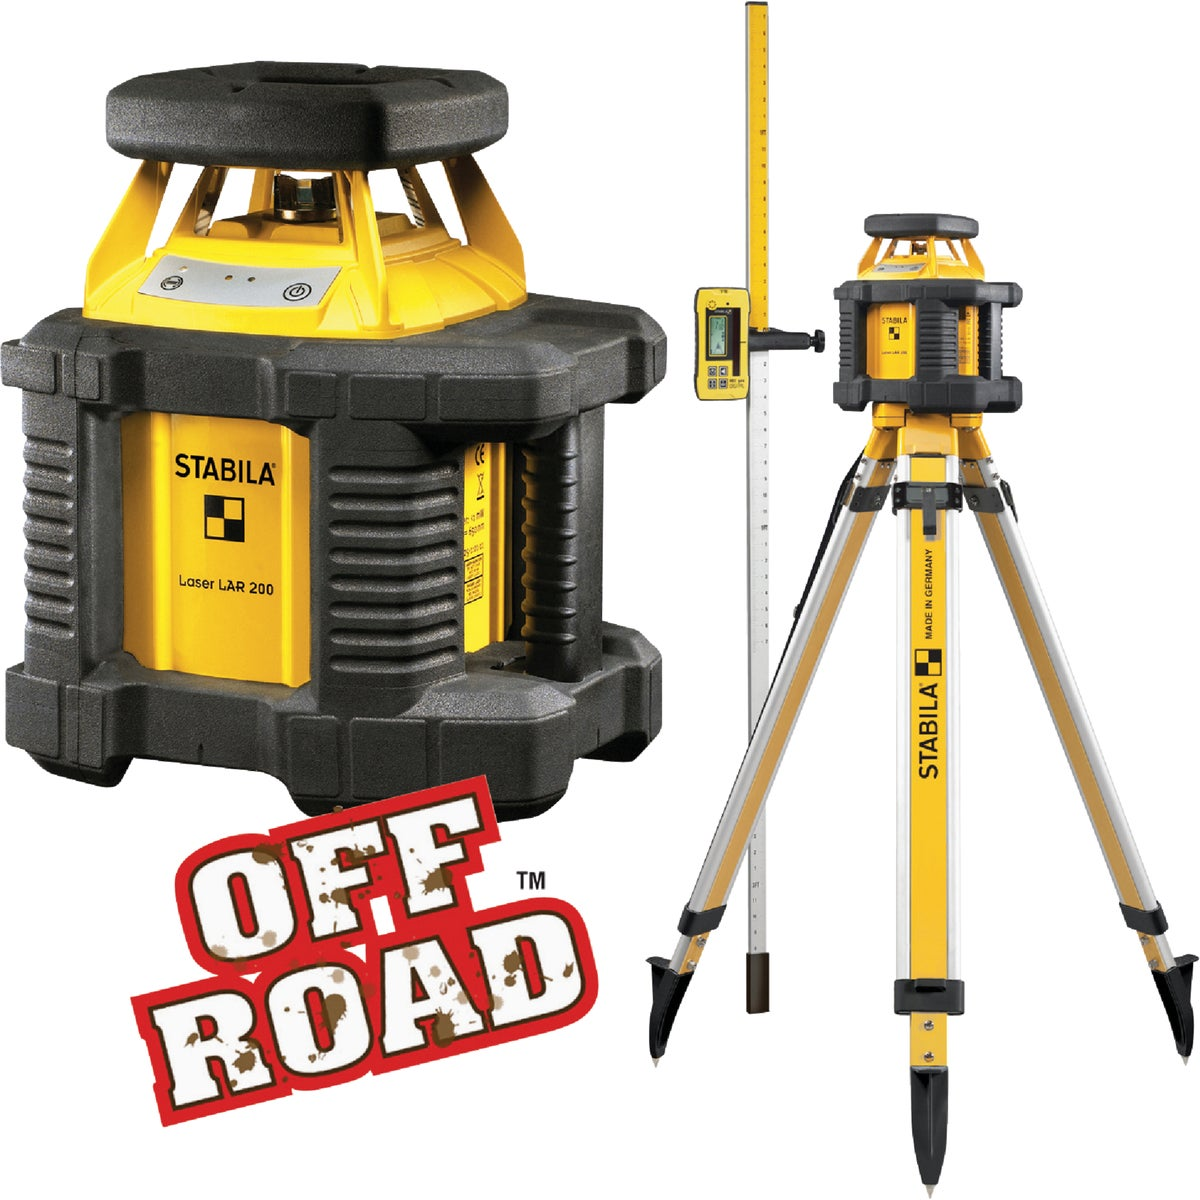 OFFROAD ROT LASER SYSTEM